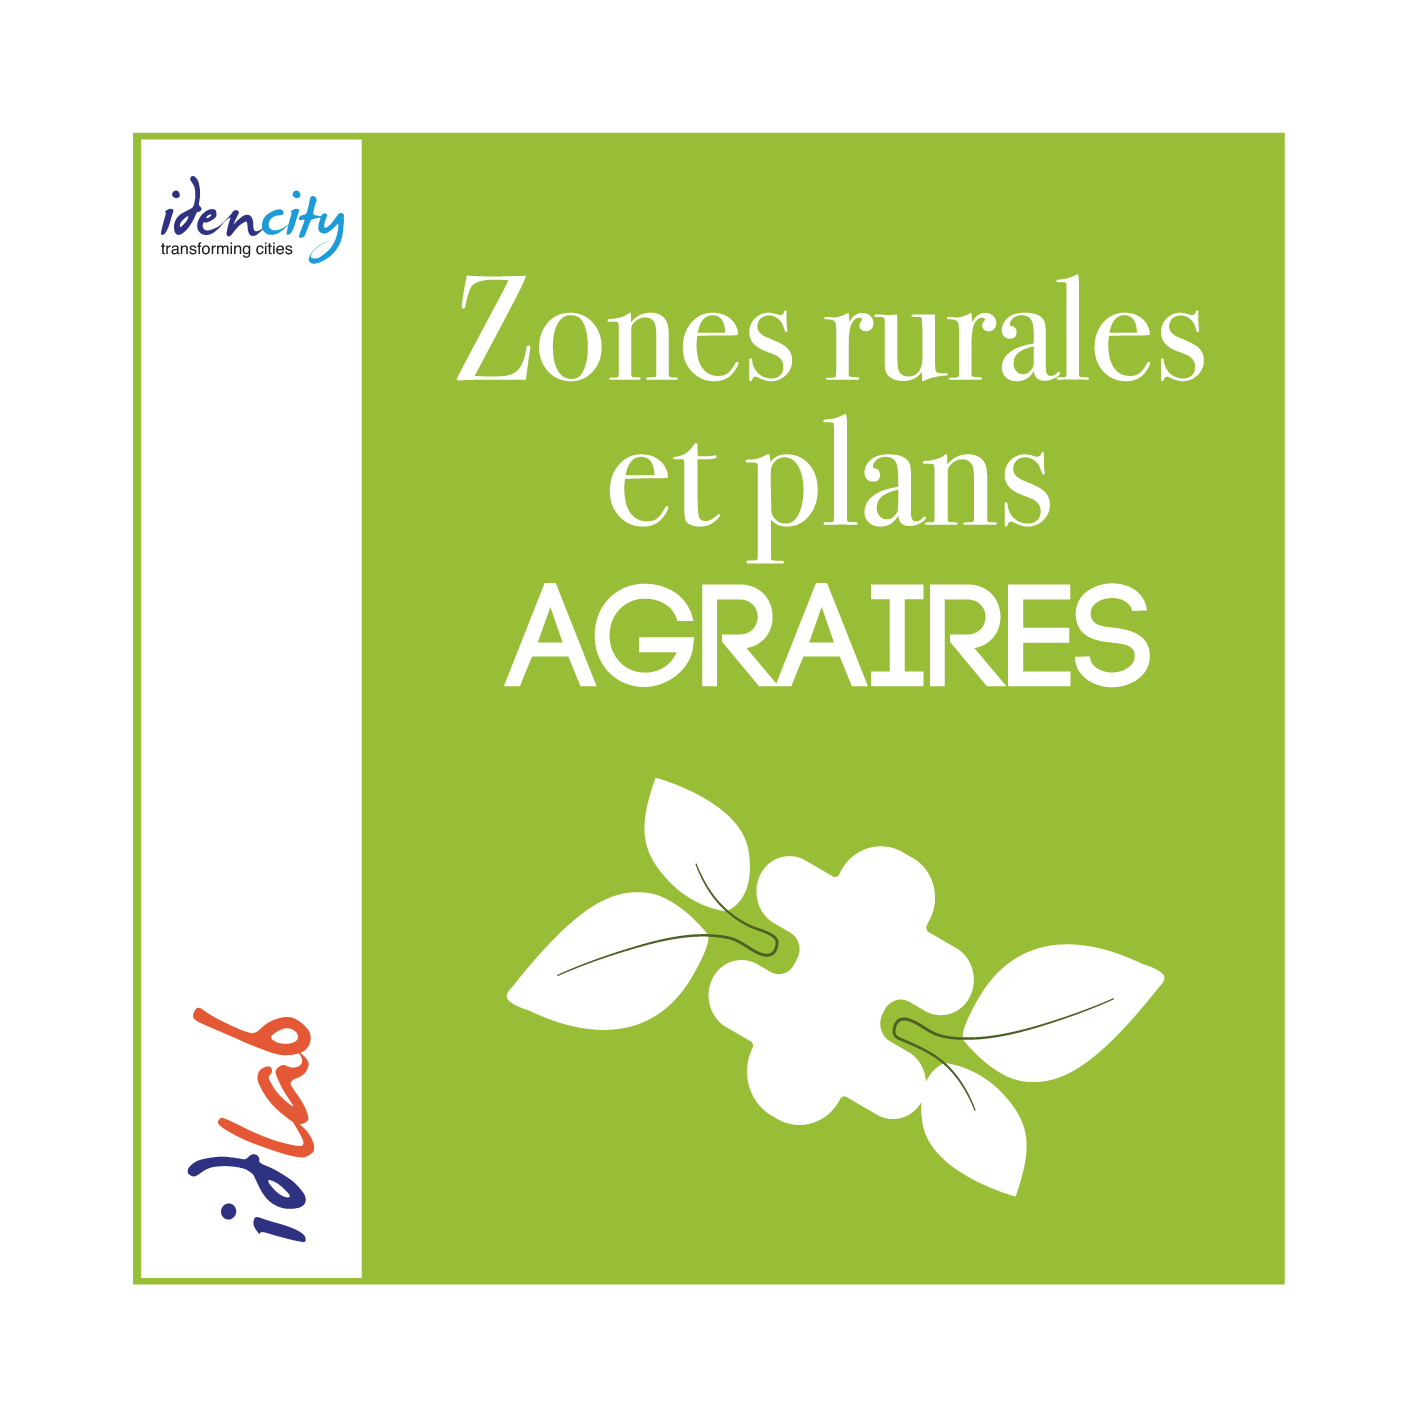 Zones rurales et plans agraires - Idencity